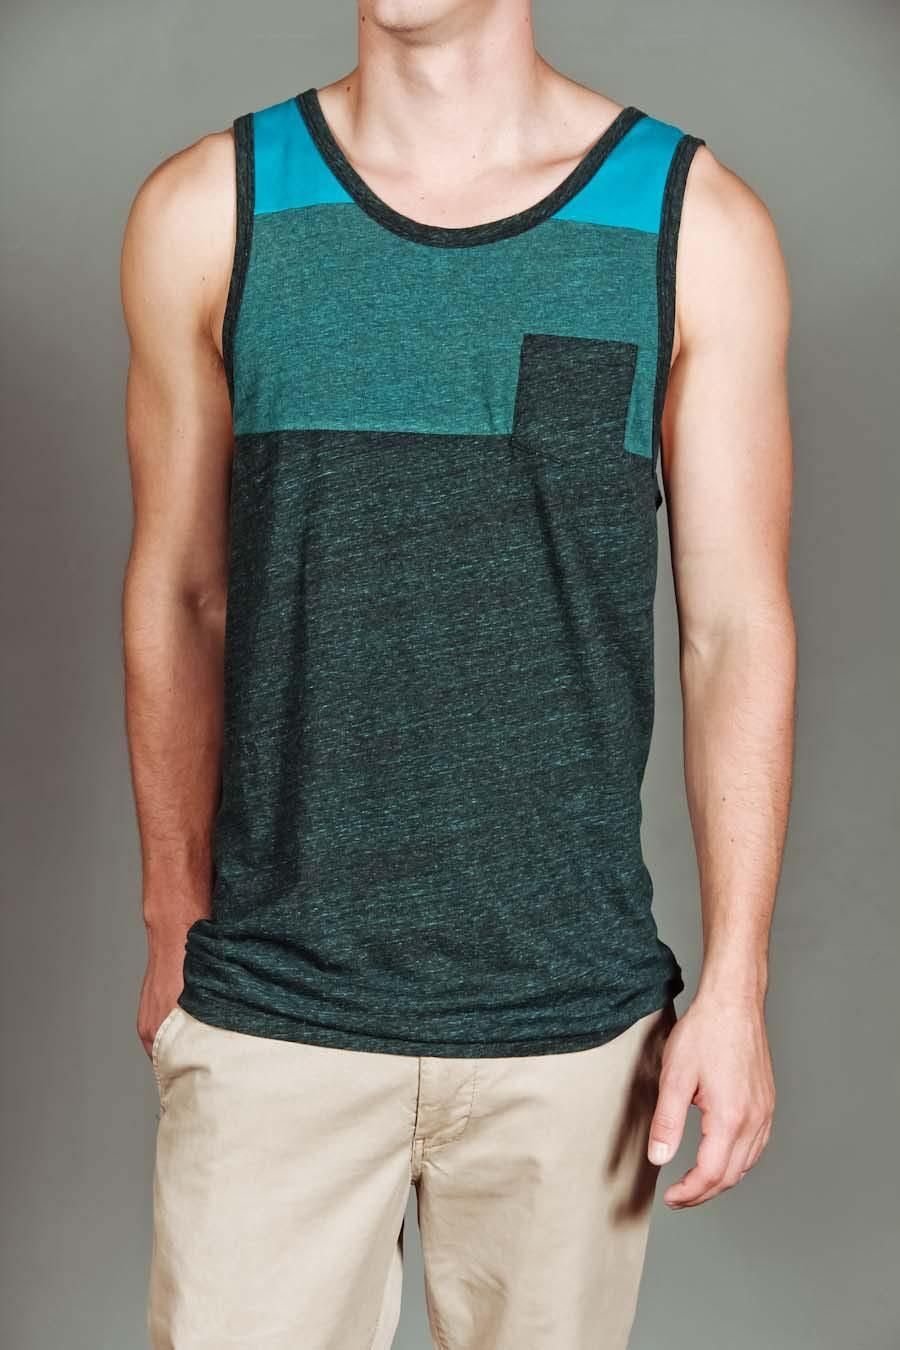 090e8bba4914b jackthreads -- tank top with front pocket.